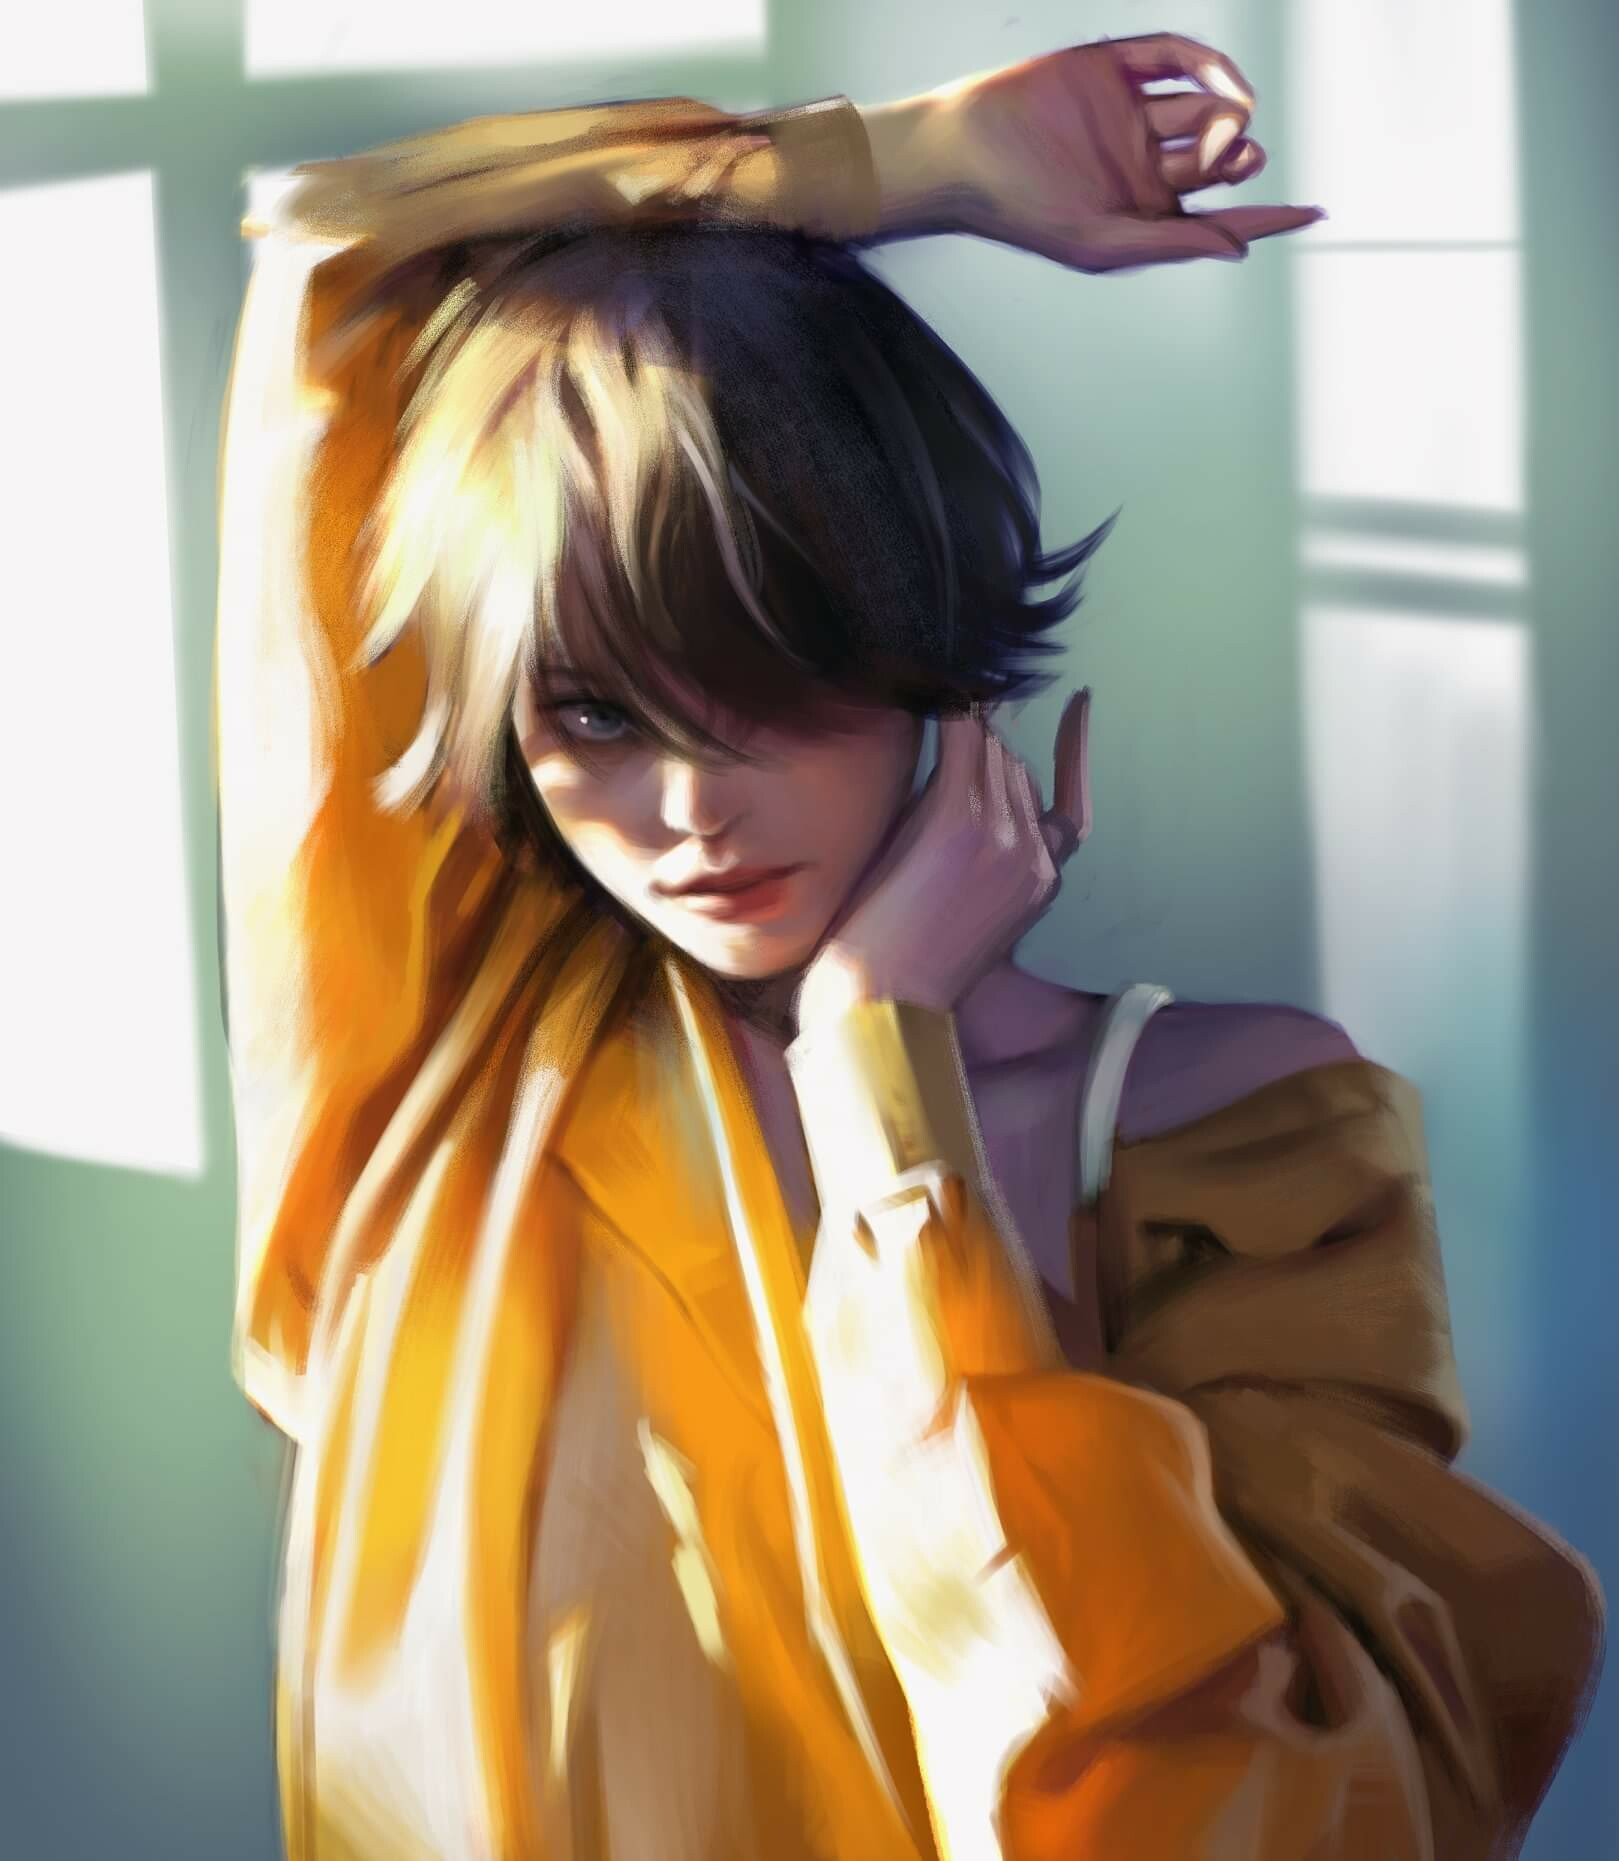 Yellow dressed girl drawing,by ryeowon kwon